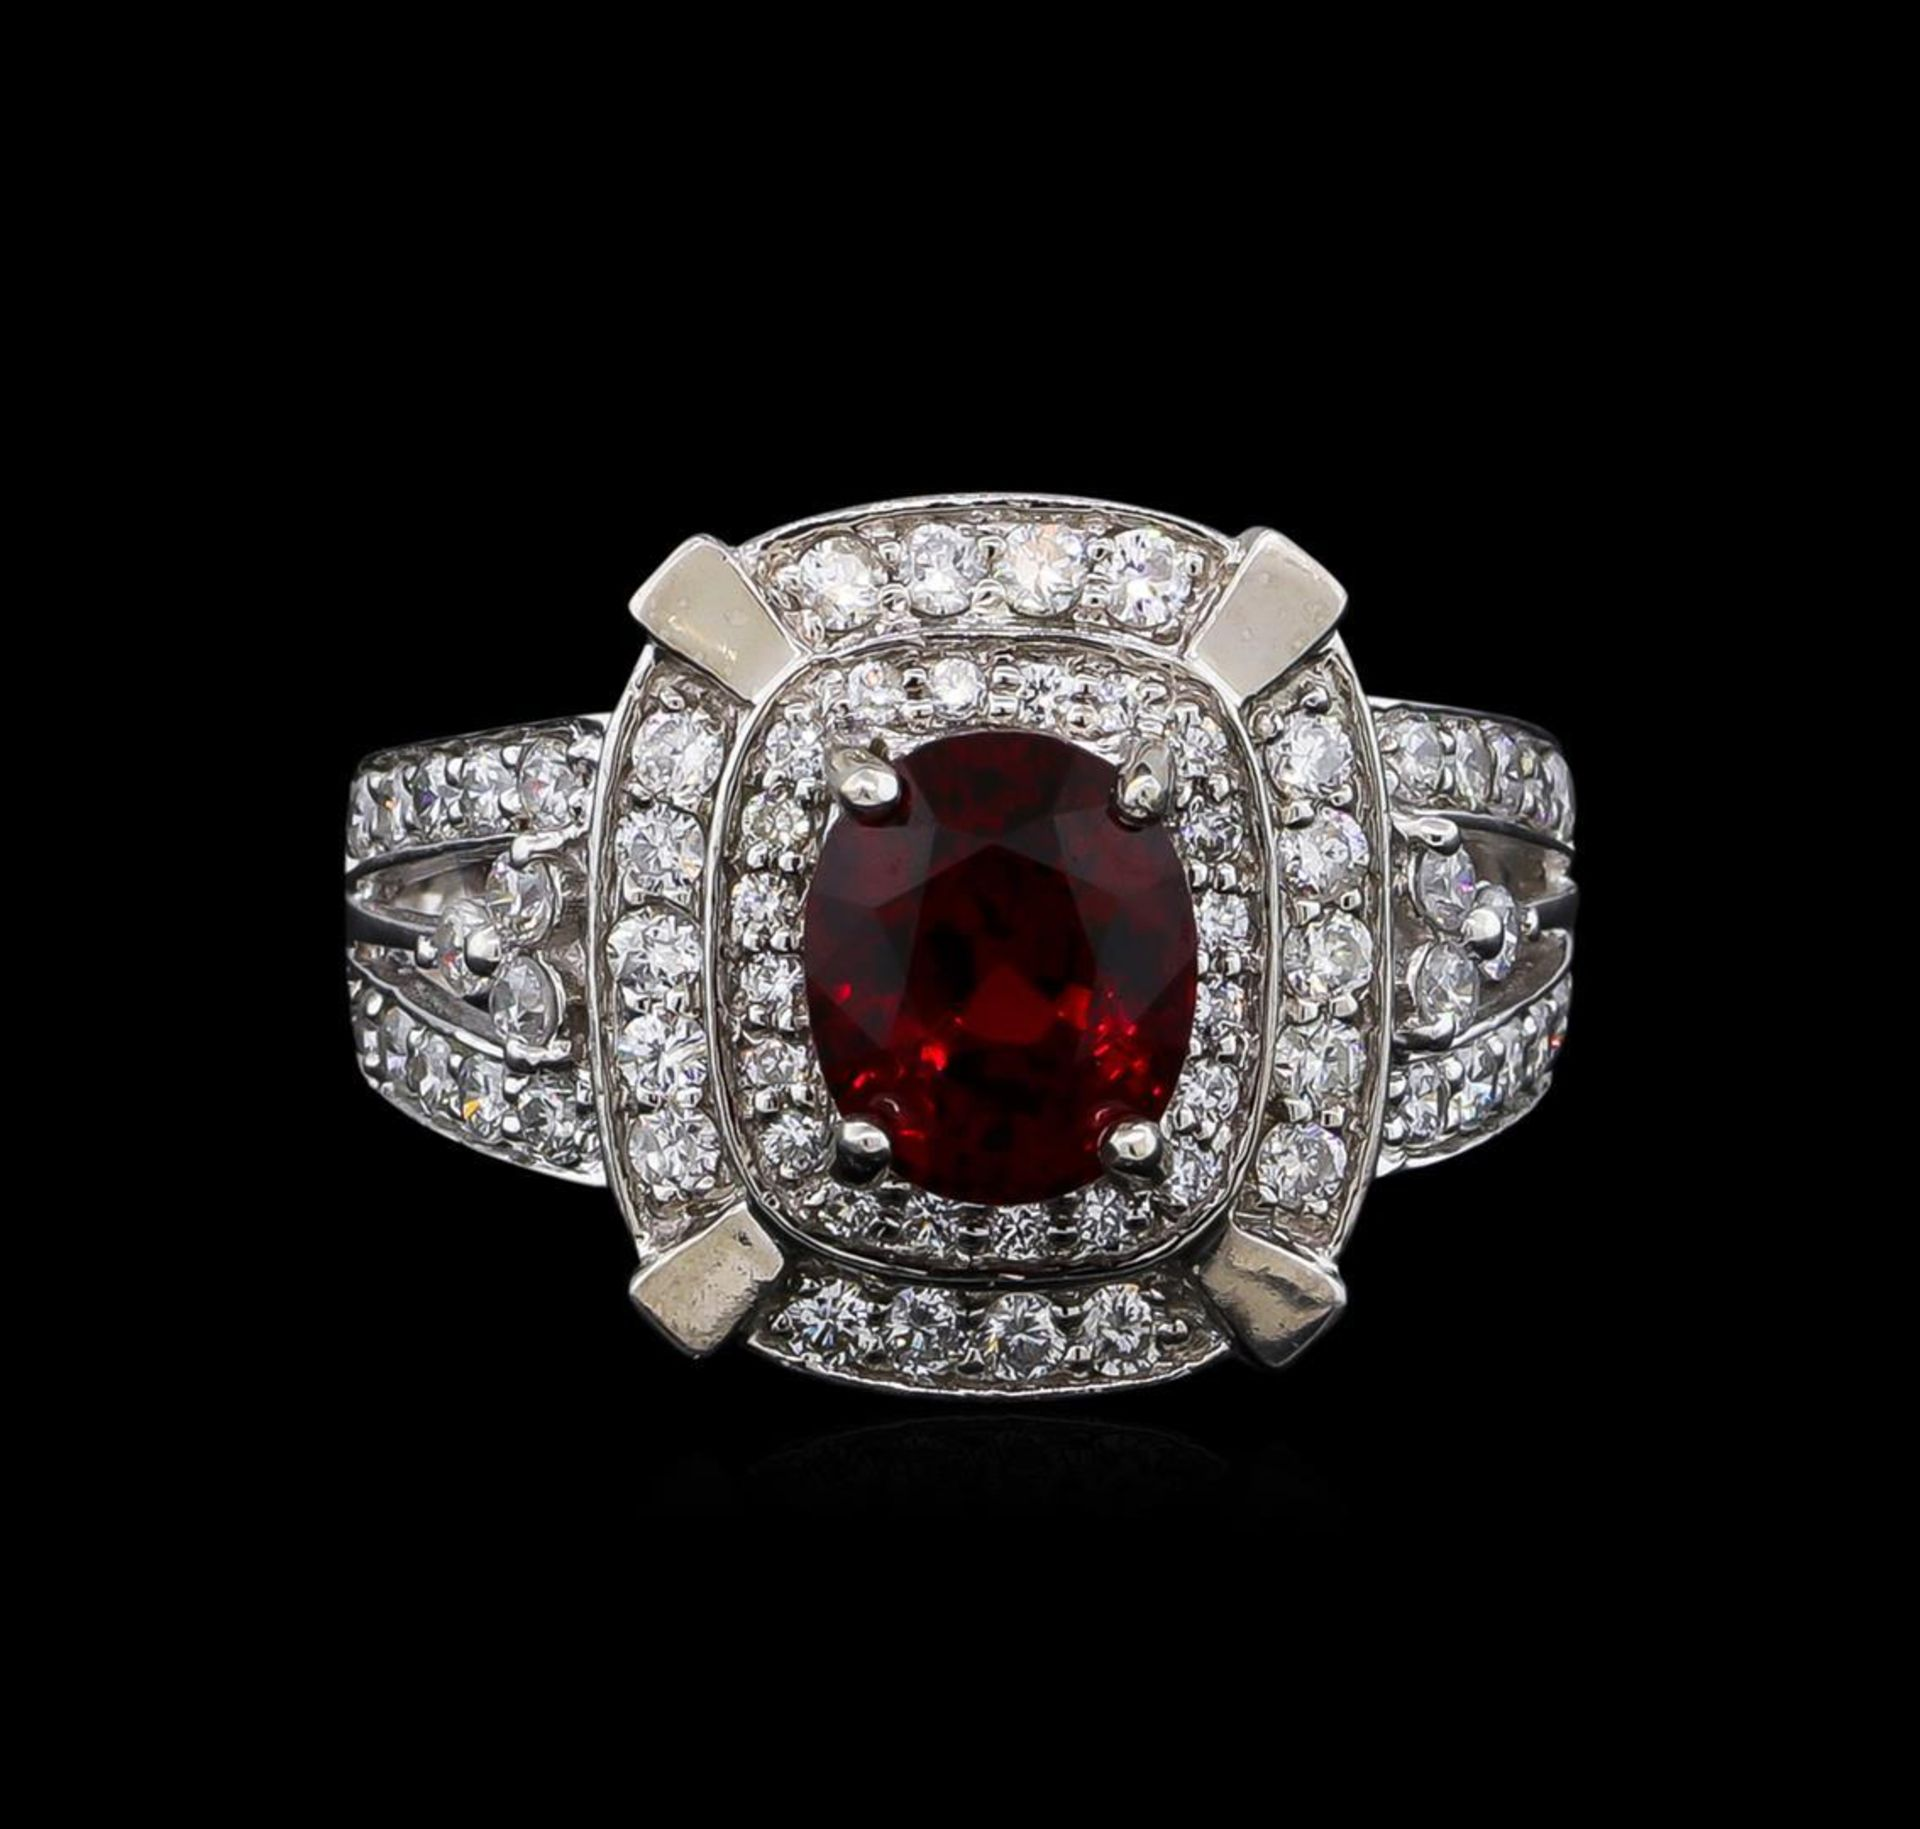 14KT White Gold 2.67 ctw Spinel and Diamond Ring - Image 2 of 5